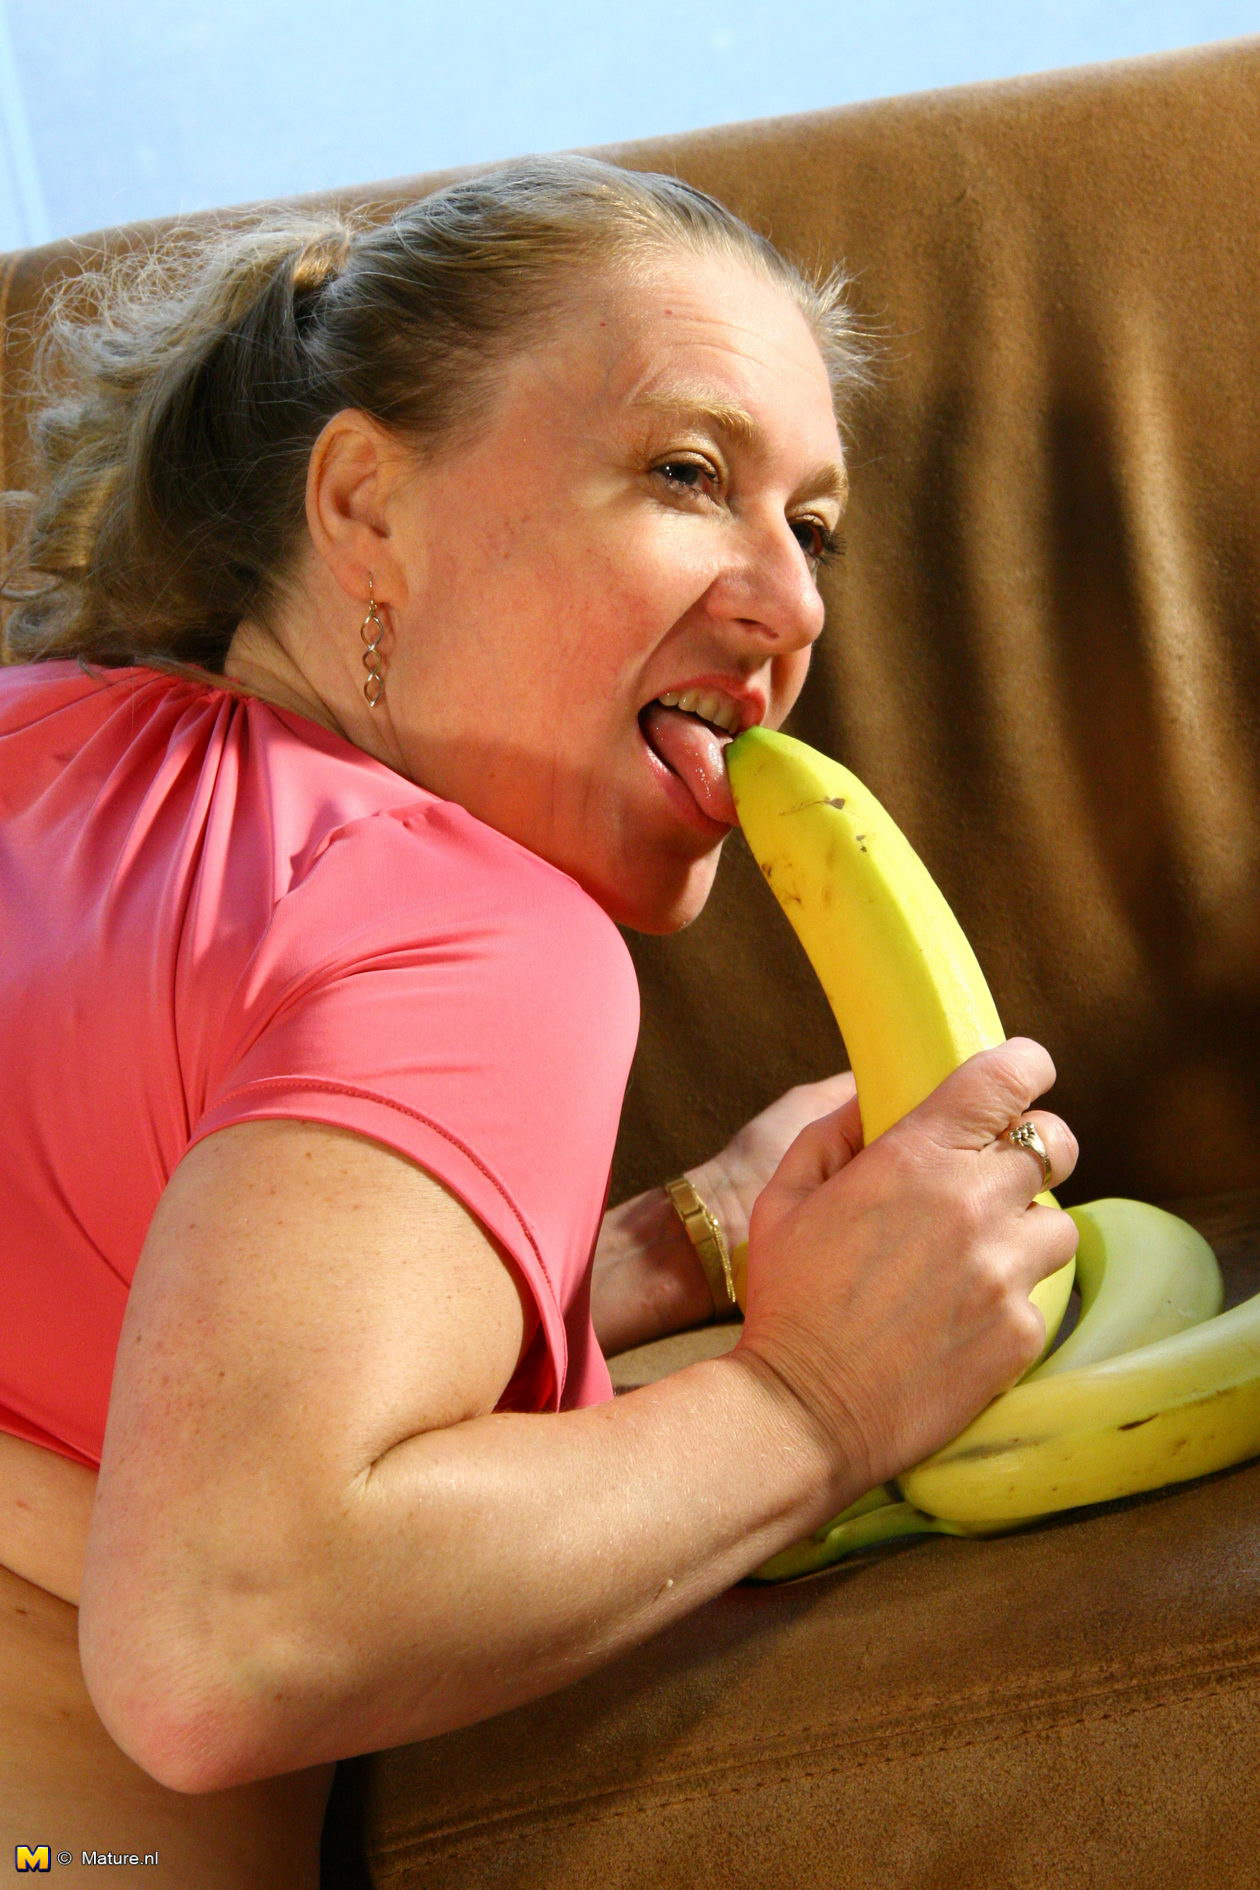 Playing with a banana 9